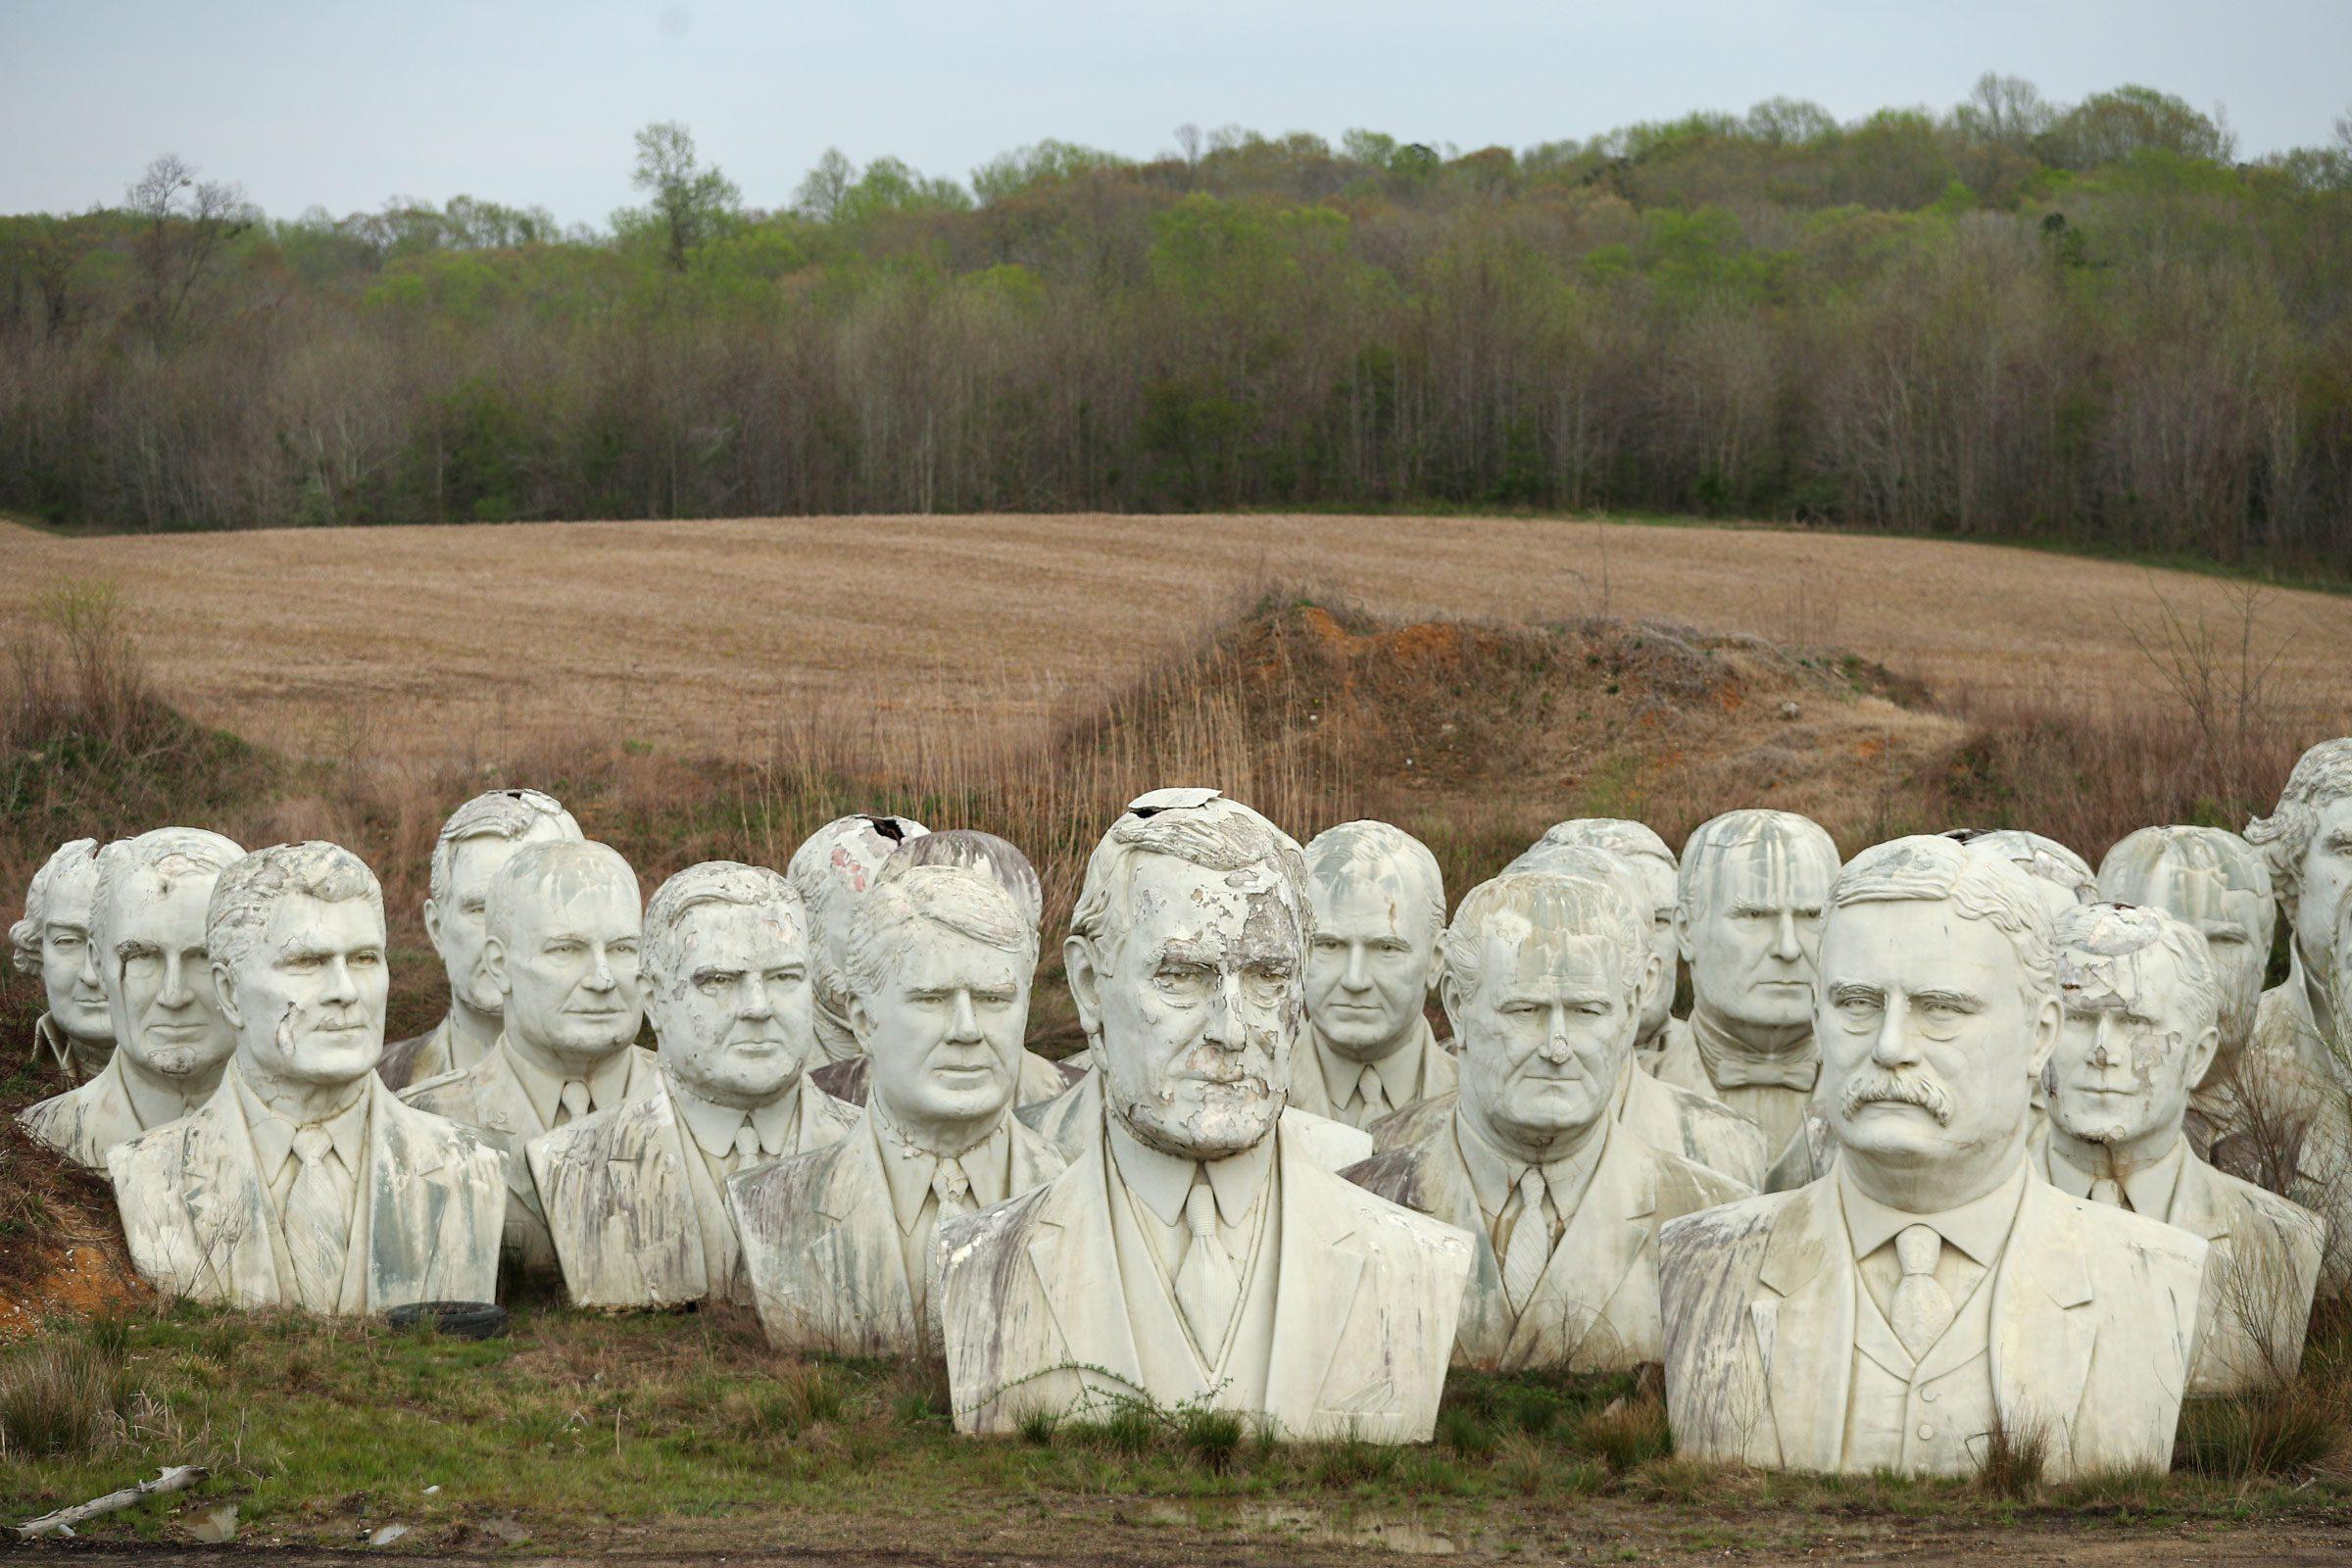 Remnants Of Bankrupted Presidents Park Stored On Private Family Farm In Croaker, Virginia